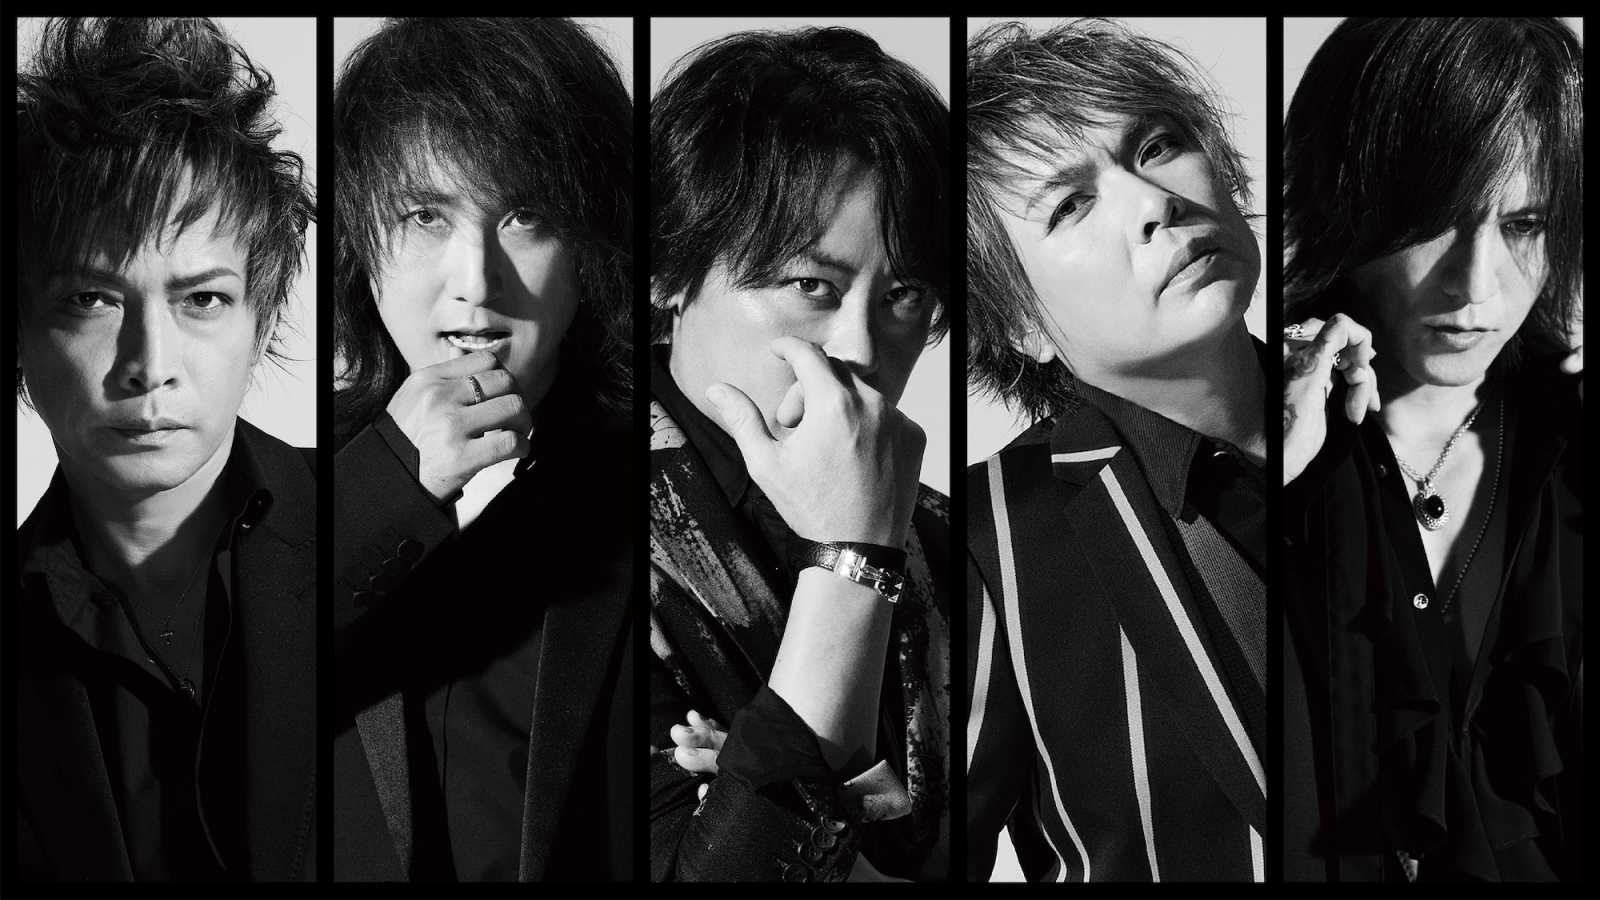 New Digital Single from LUNA SEA © LUNA SEA. All rights reserved.